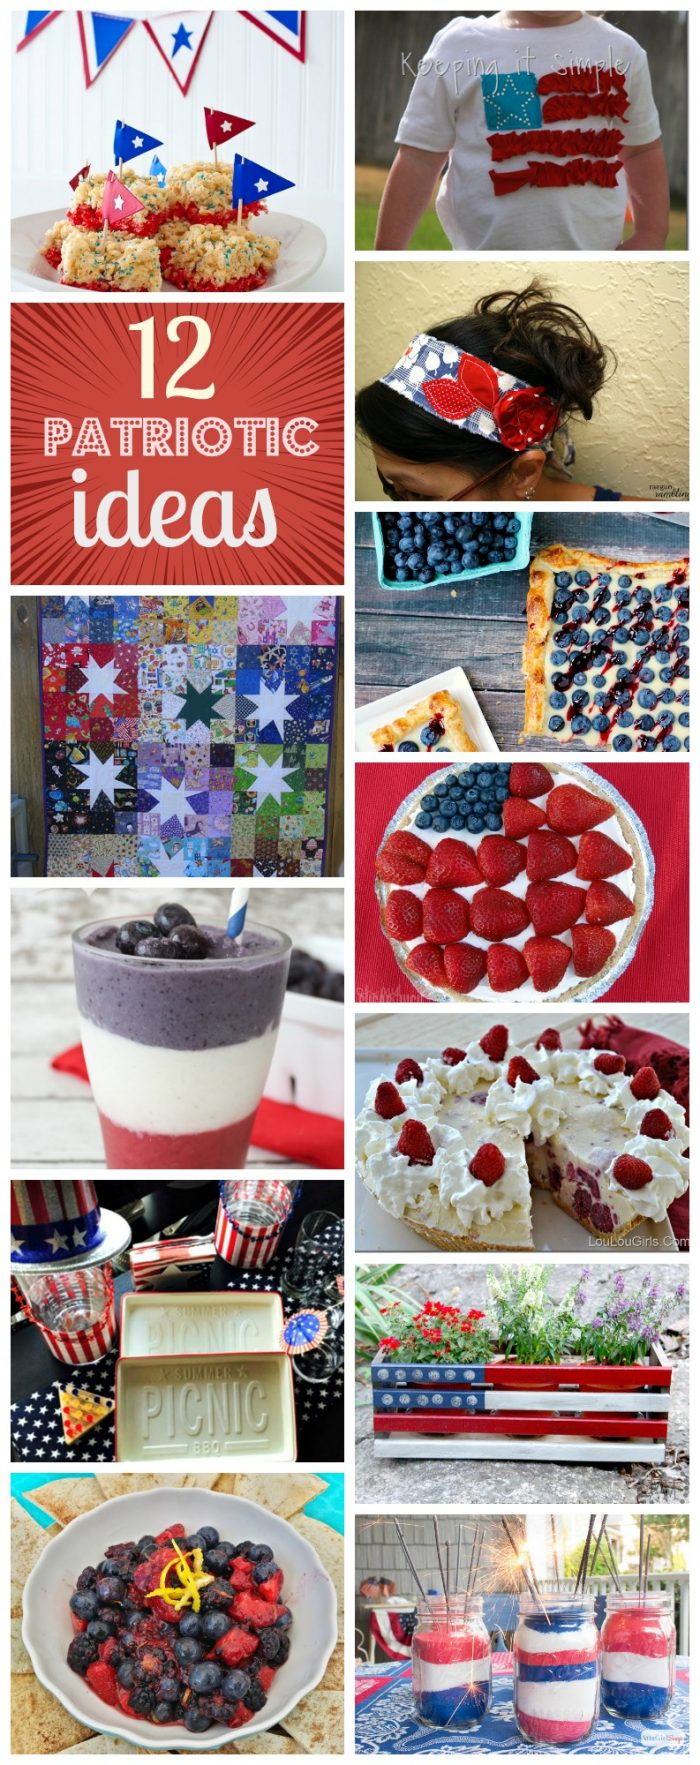 12 Patriotic Ideas perfect for Memorial Day or Independence day...